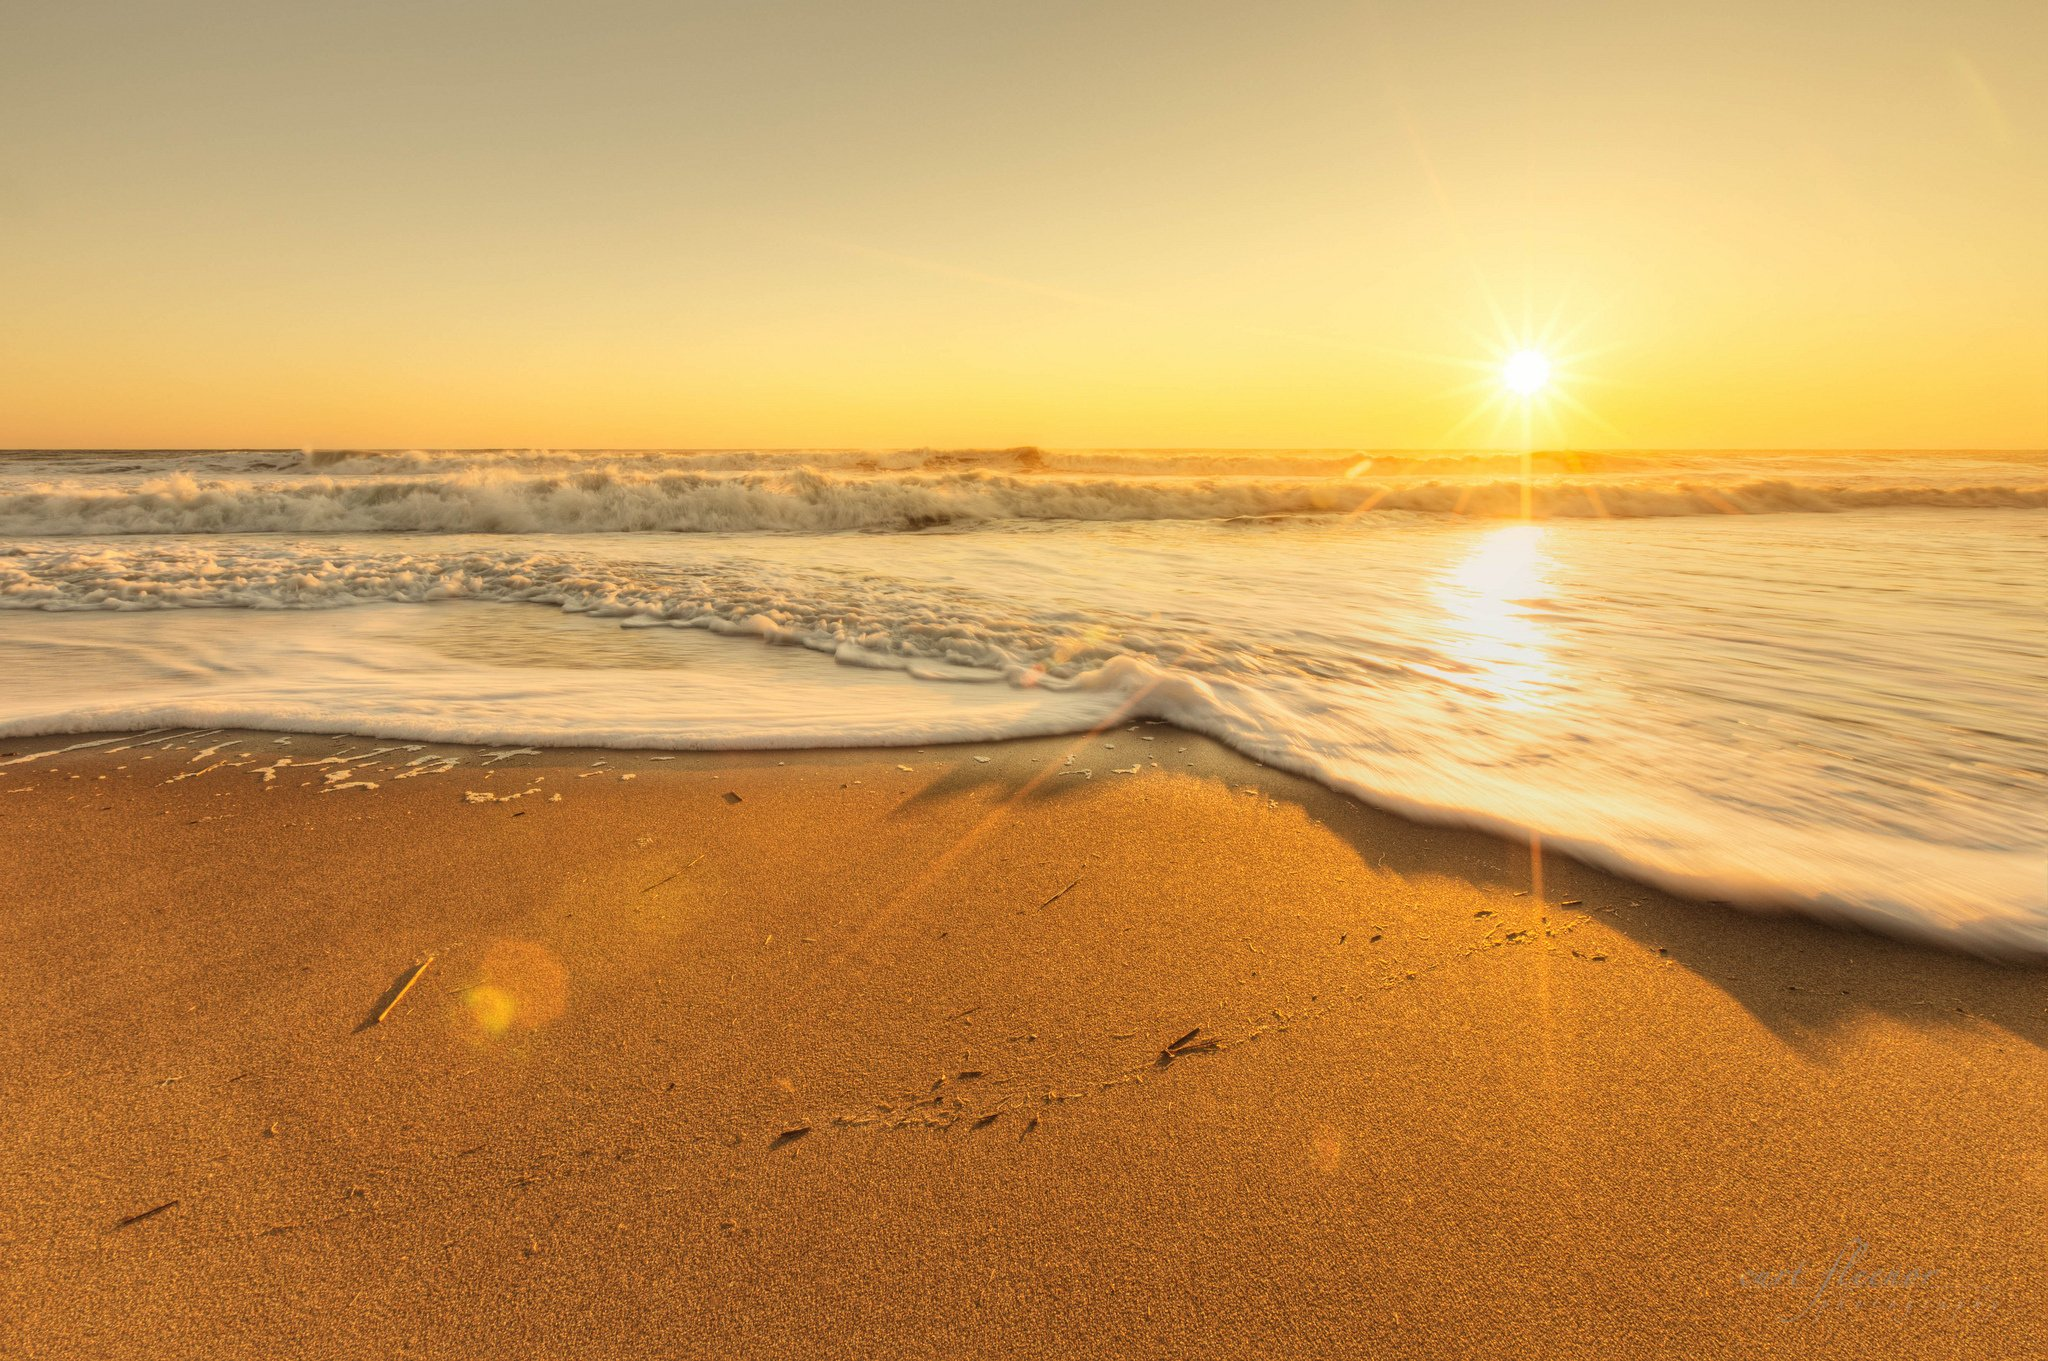 beach scenery Beautiful beach scenery wallpaper best beach wallpapers images on beach wallpaper nature landscape wallpapers in high quality and widescreen resolutions from page beautiful tropical beach wallpapers.